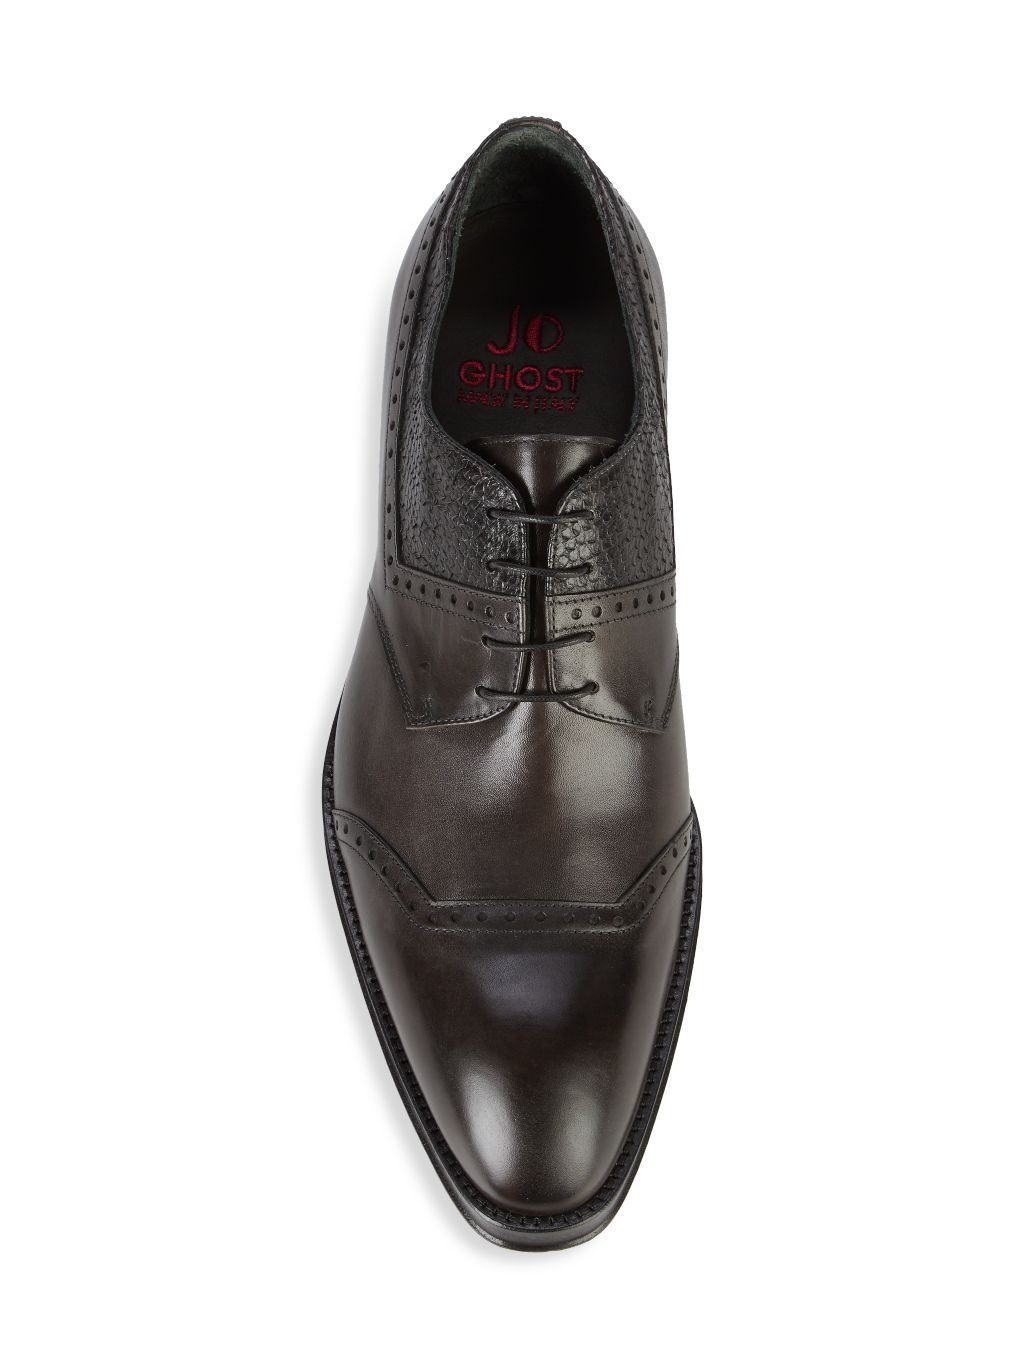 Jo Ghost Leather Oxford Brogues